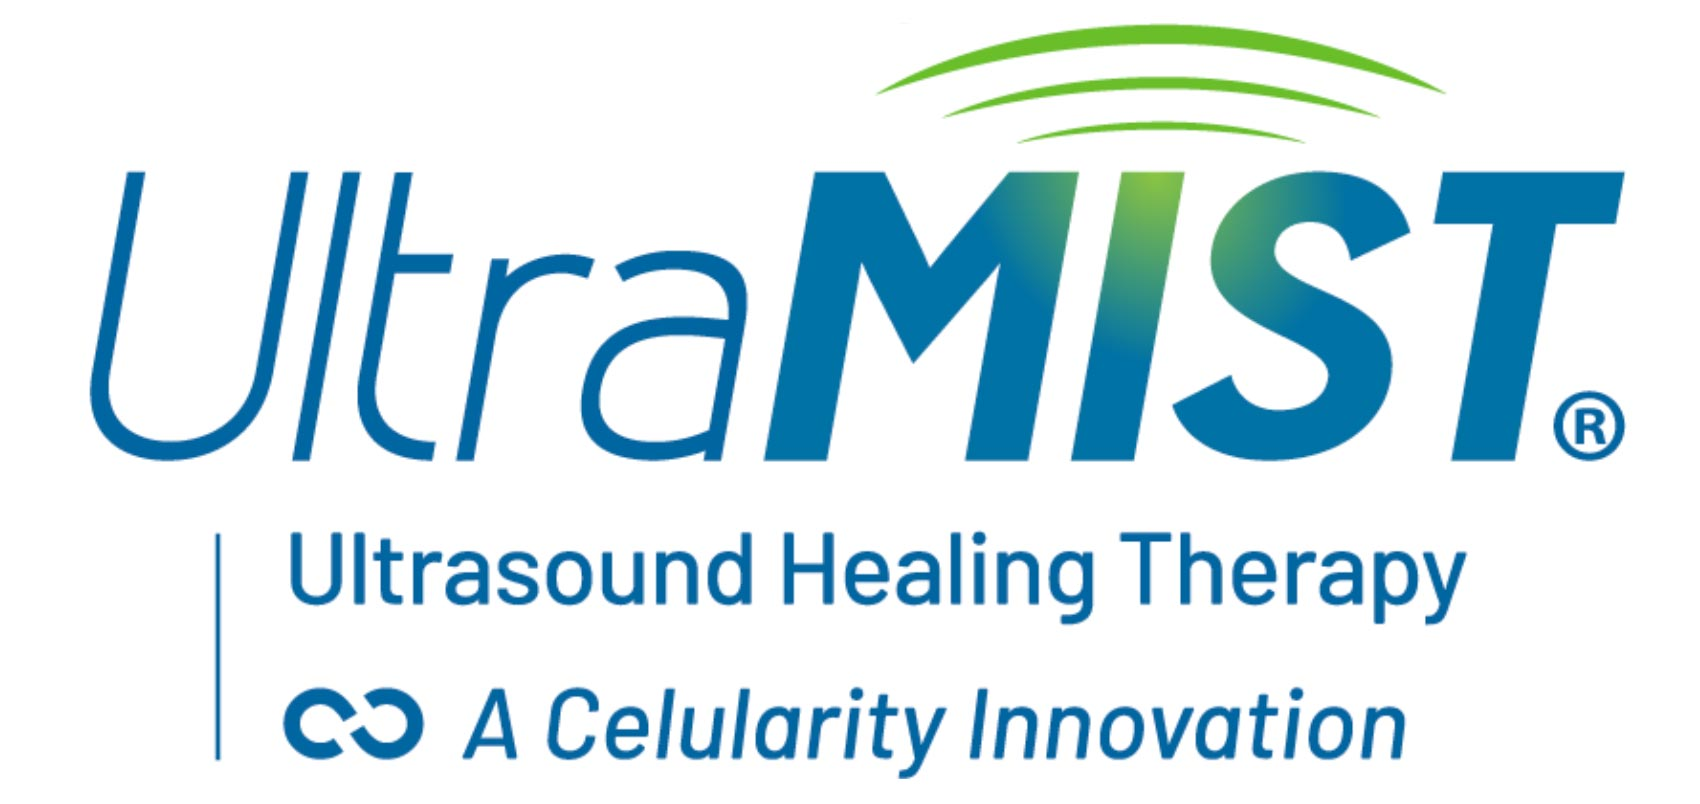 UltraMIST® ultrasound healing therapy